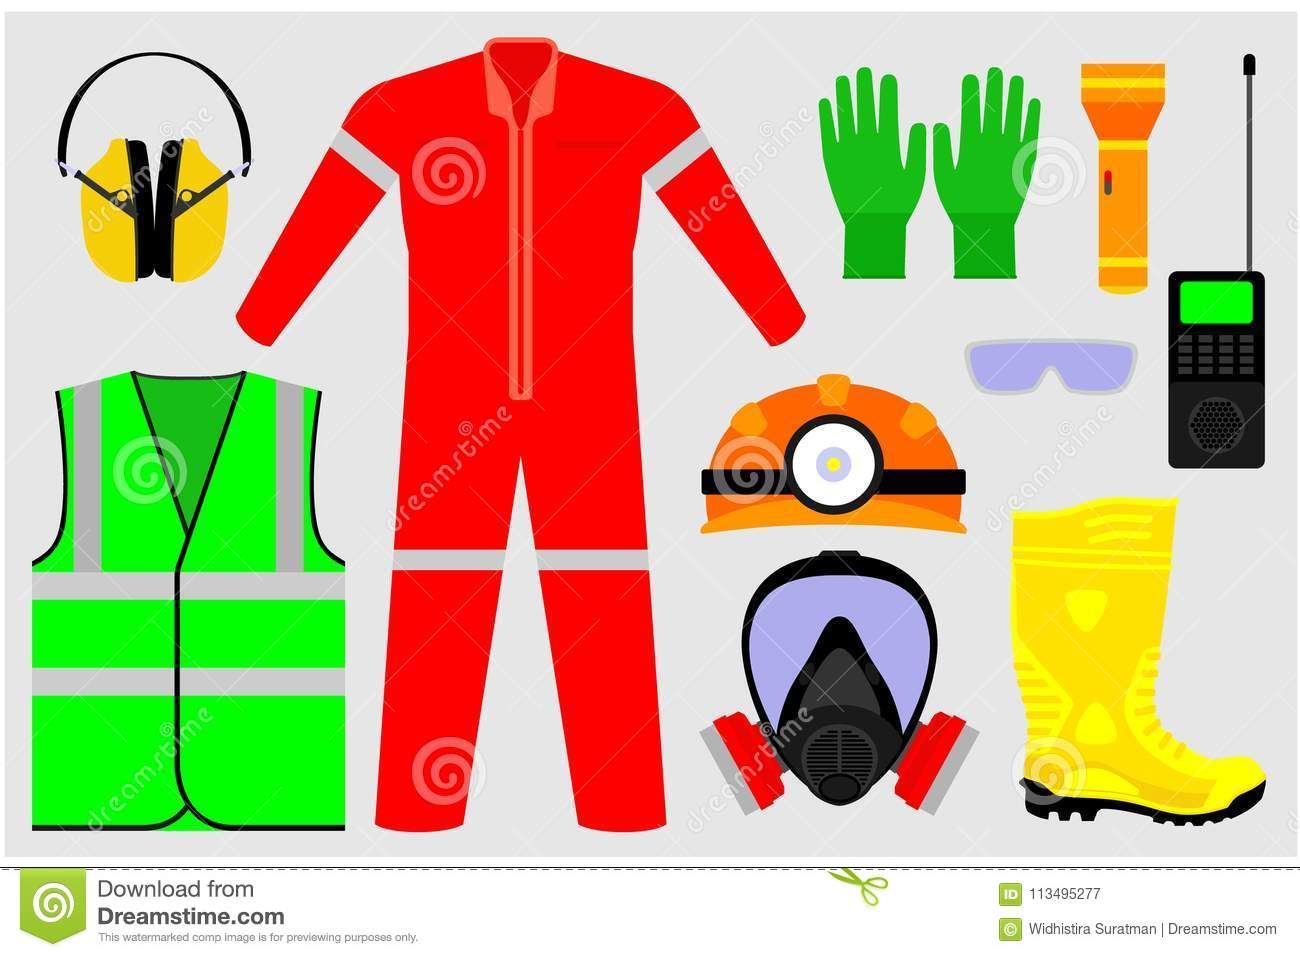 Illustrations of safety tools